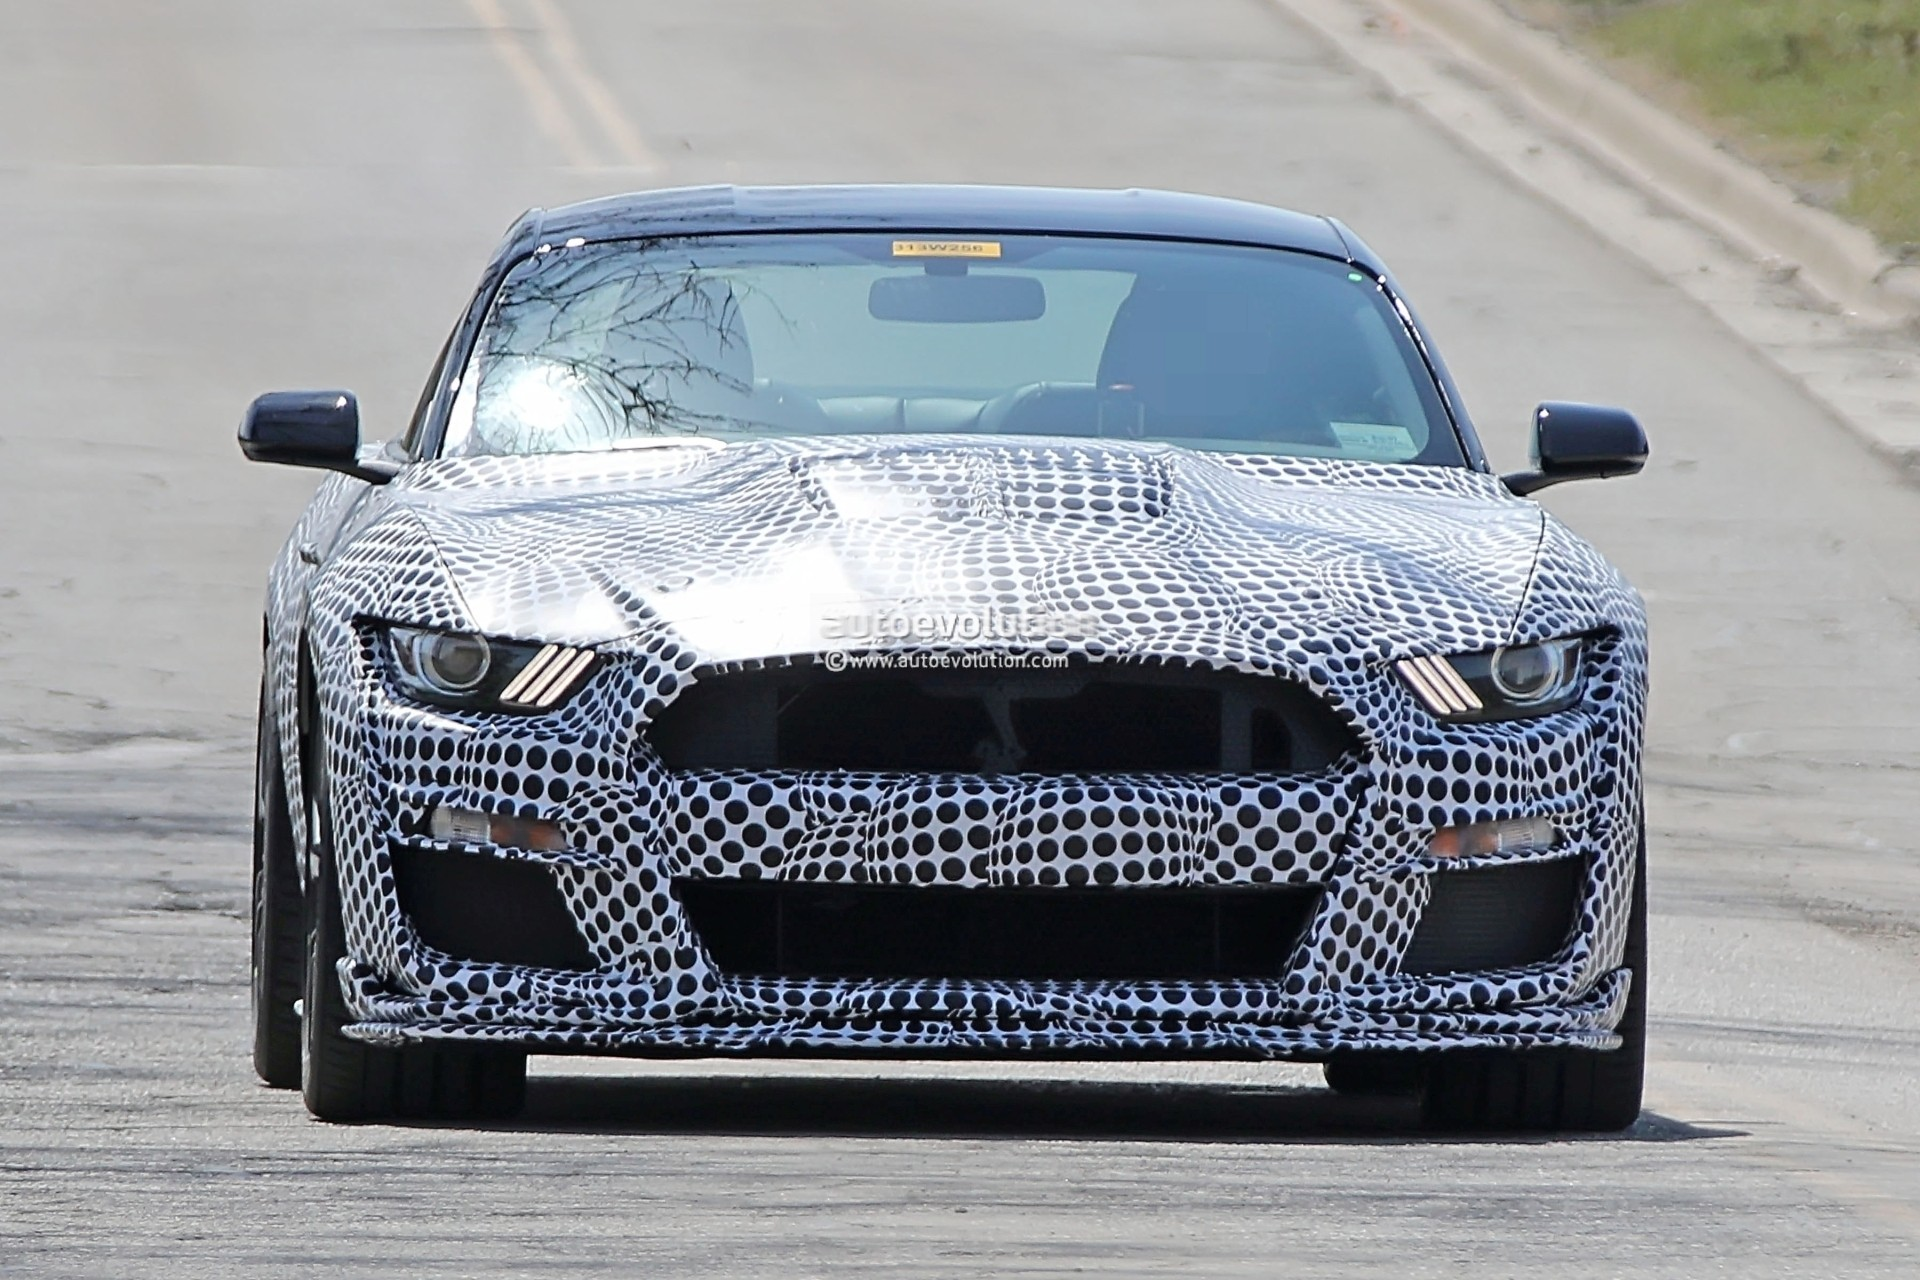 2019 Ford Mustang Shelby GT500 spied